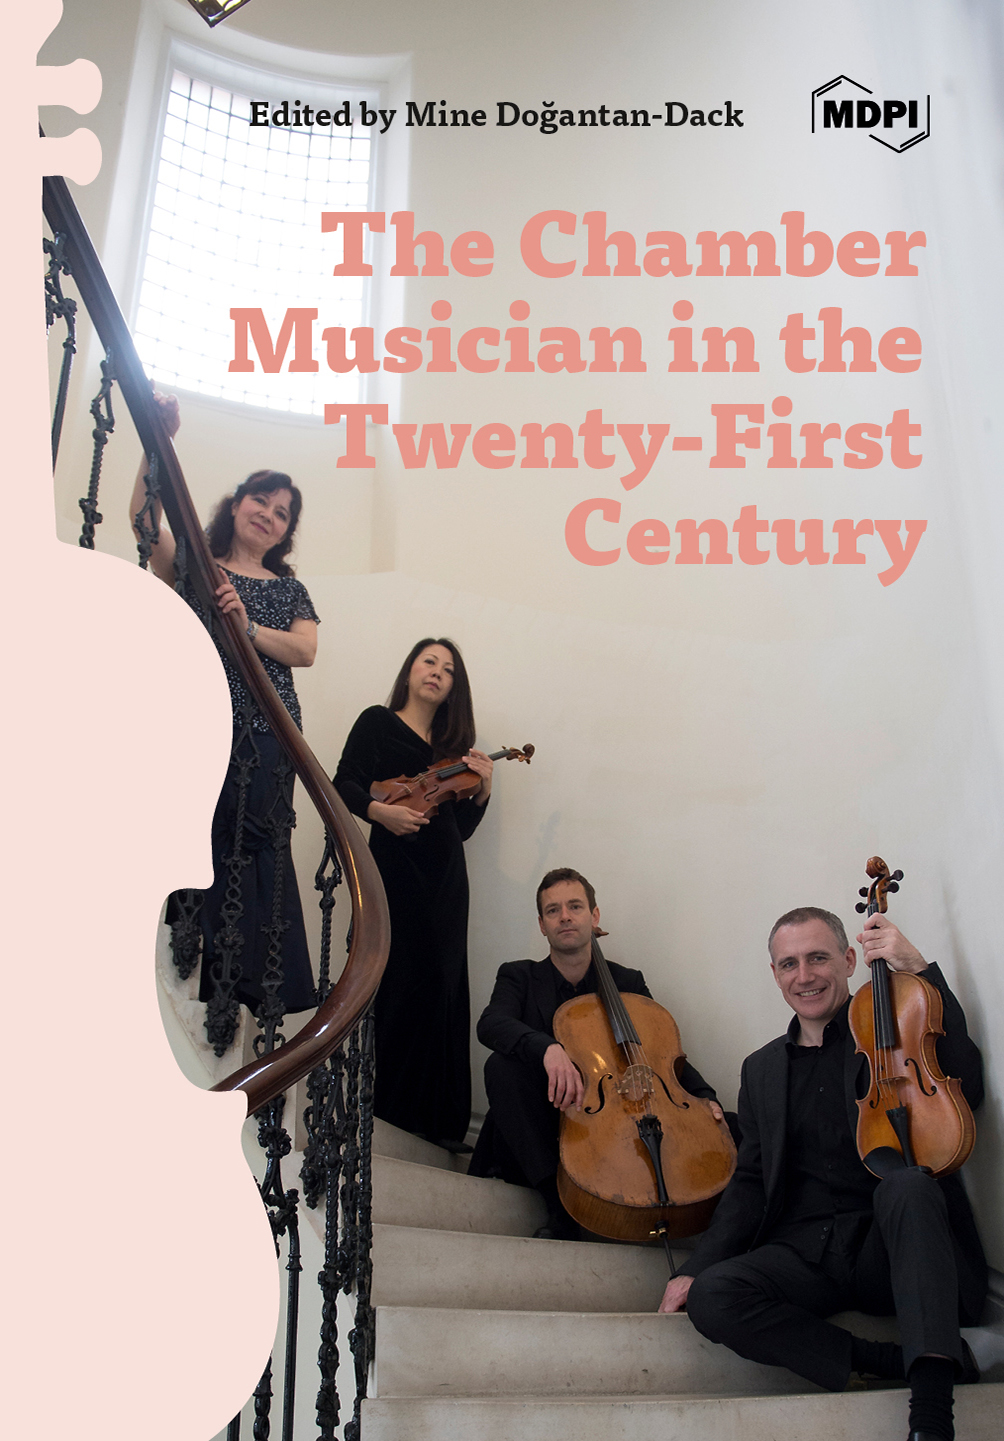 The Chamber Musician in the Twenty-First Century